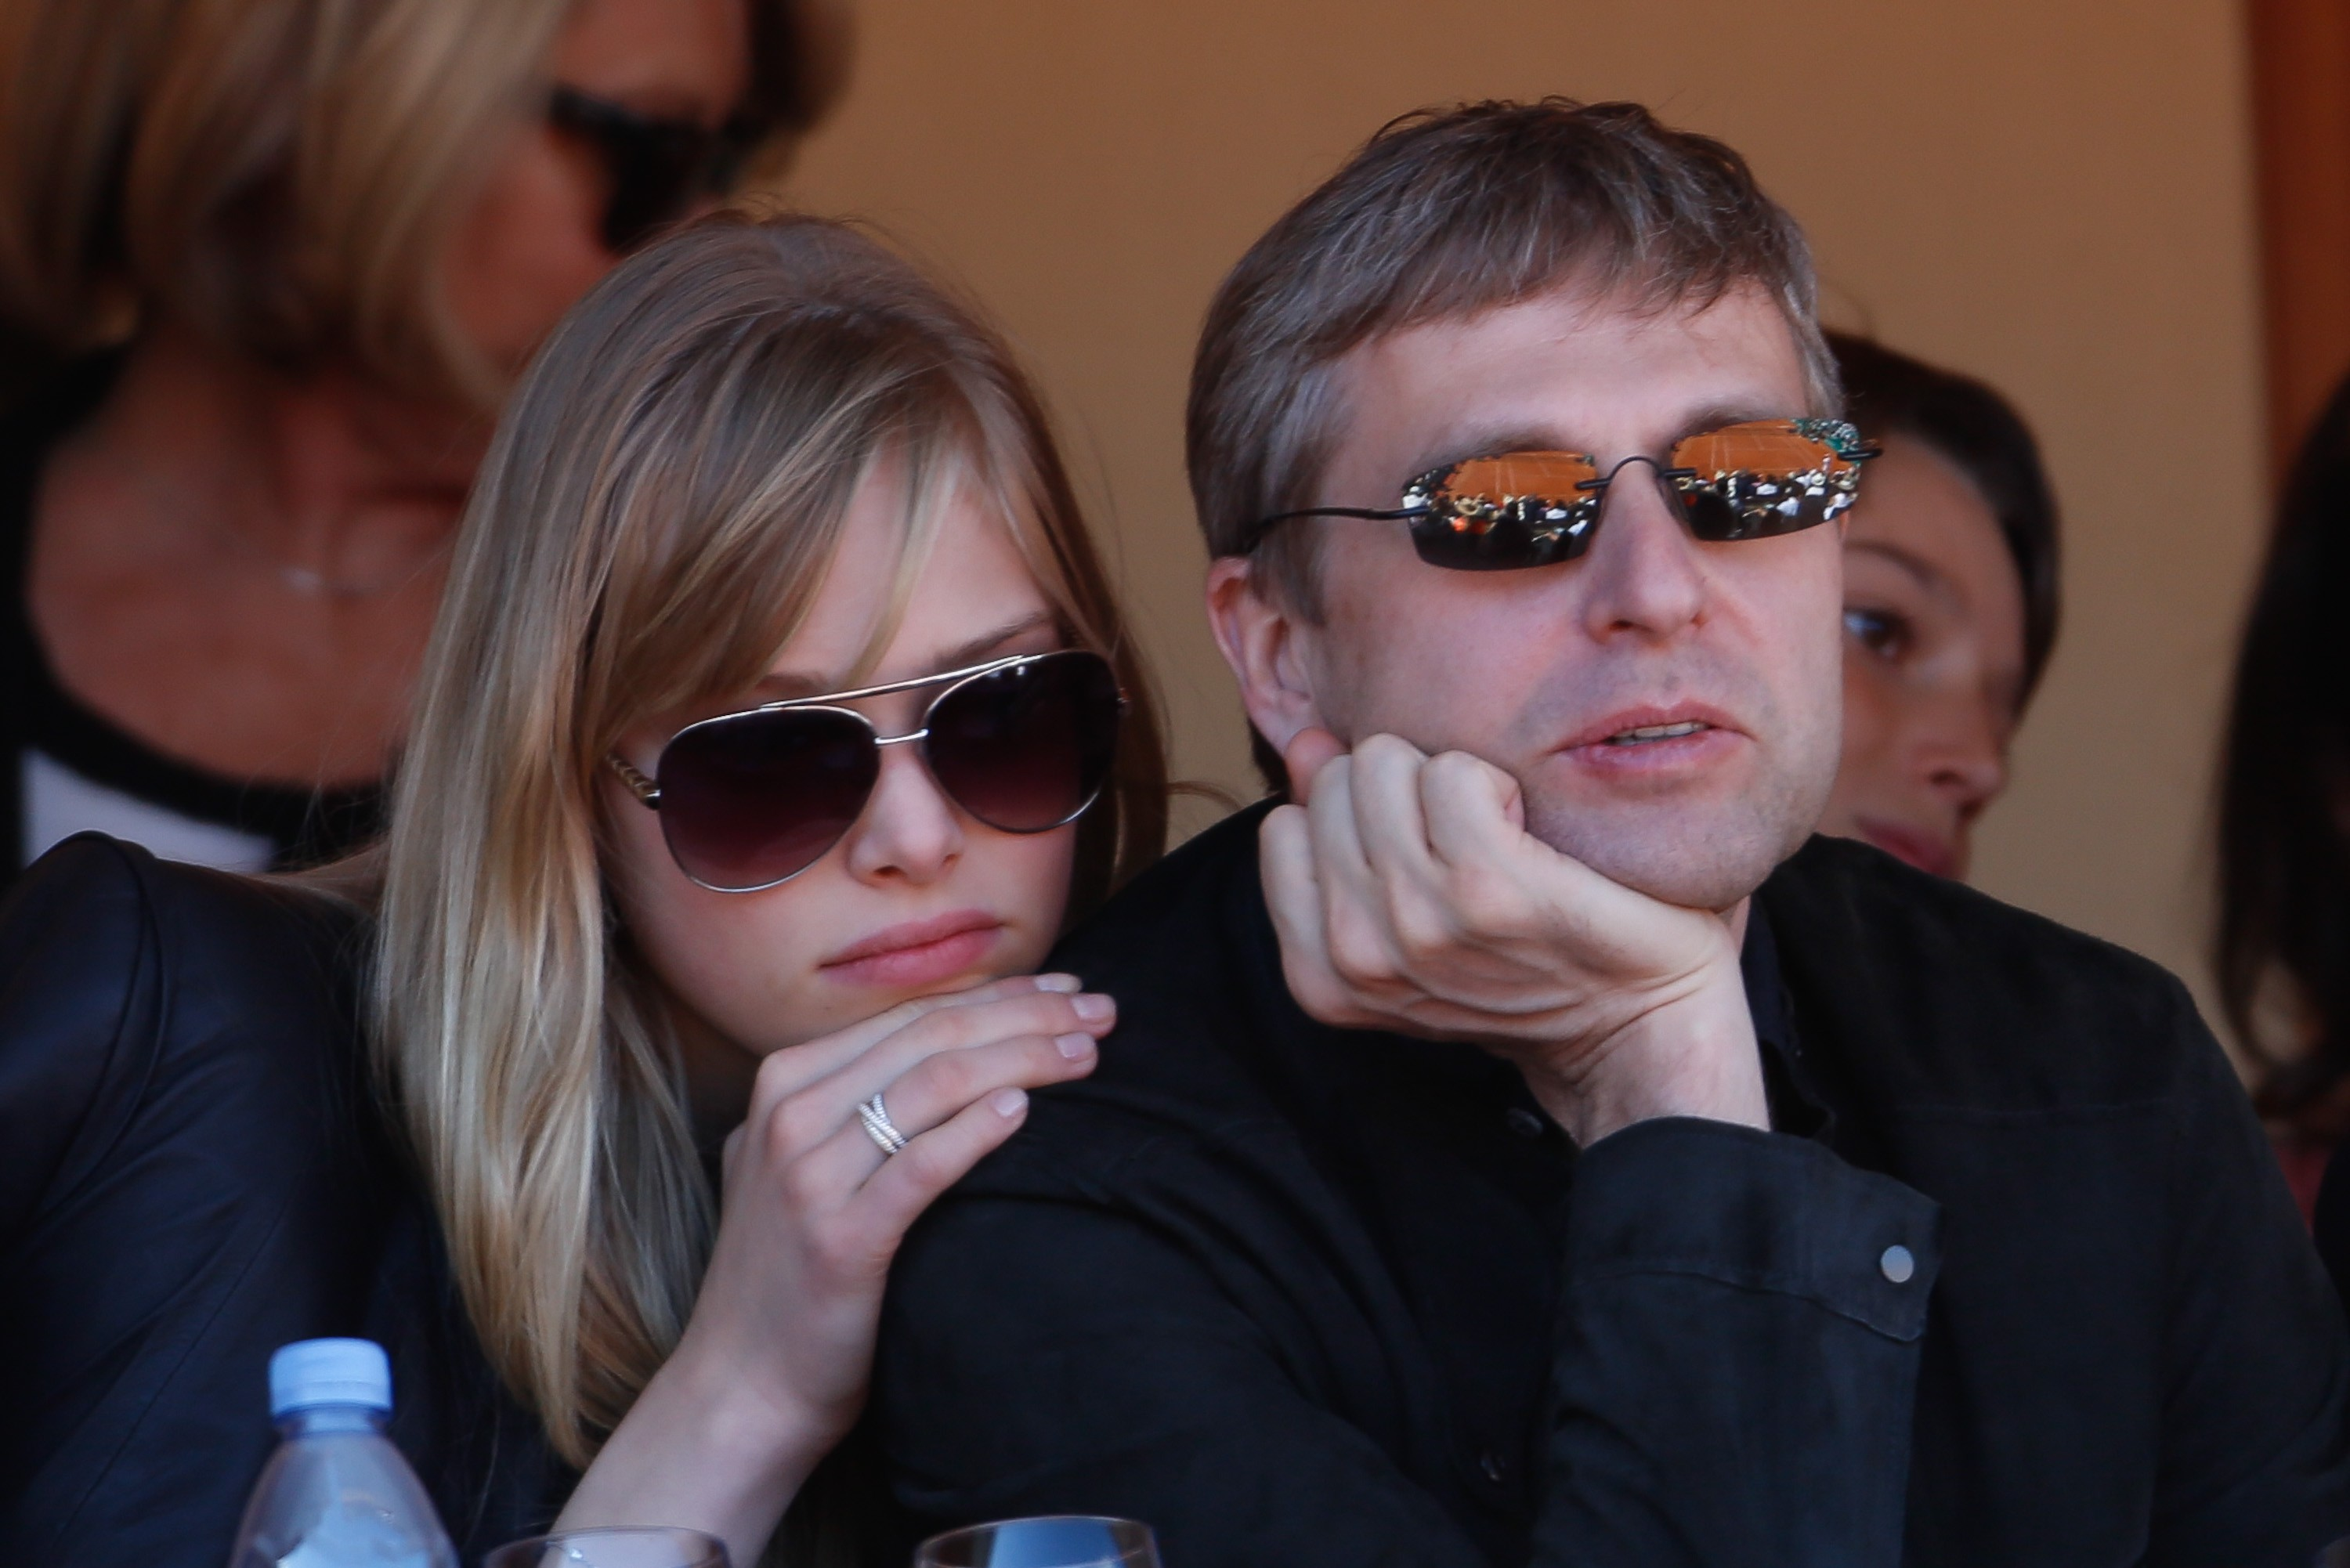 Elena Rybolovleva e Dmitry Rybolovlev (Foto: Getty Images)